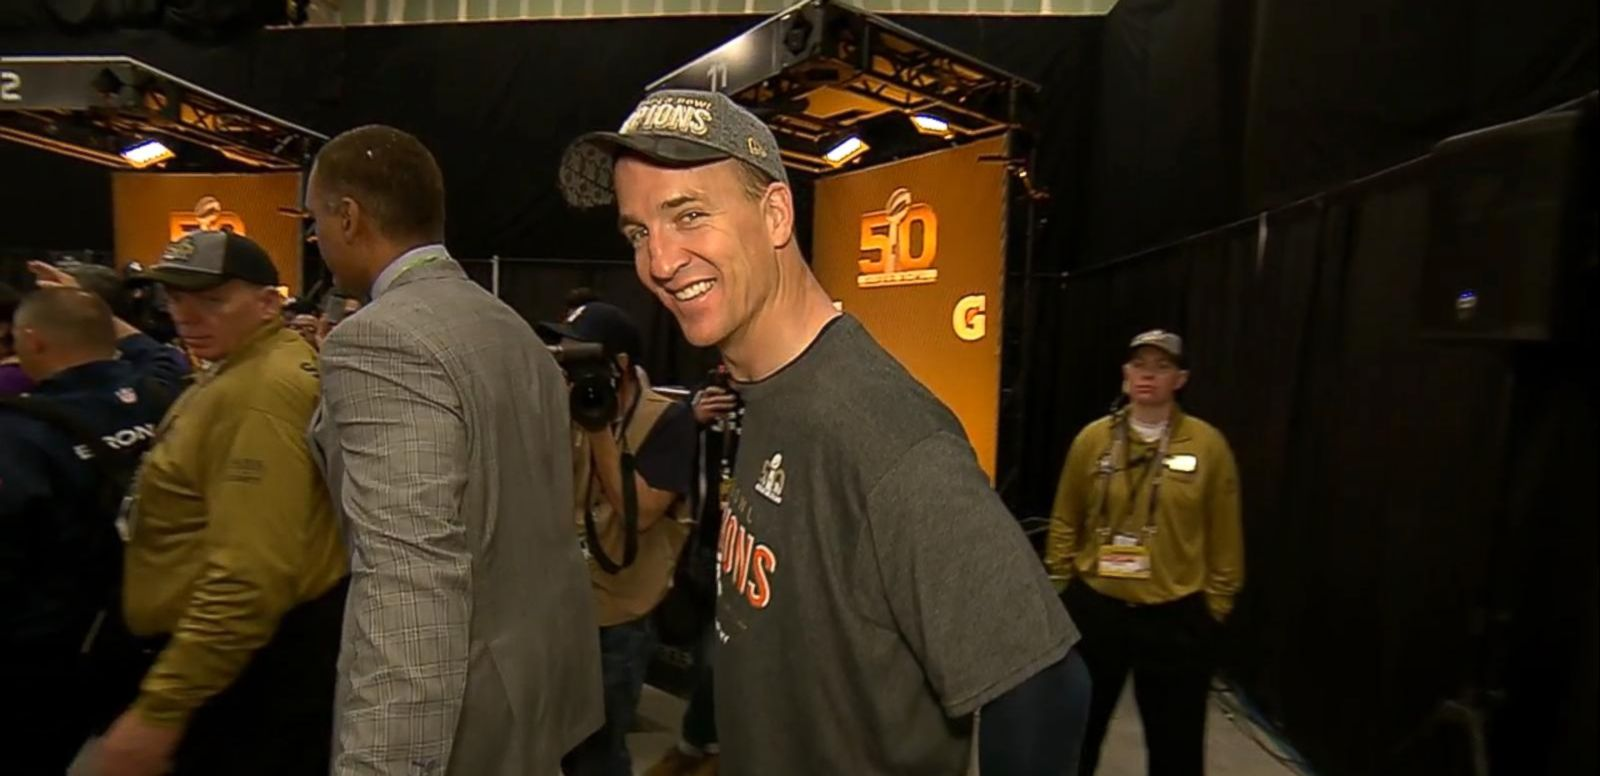 VIDEO: Peyton Manning 'Going to Disneyland'